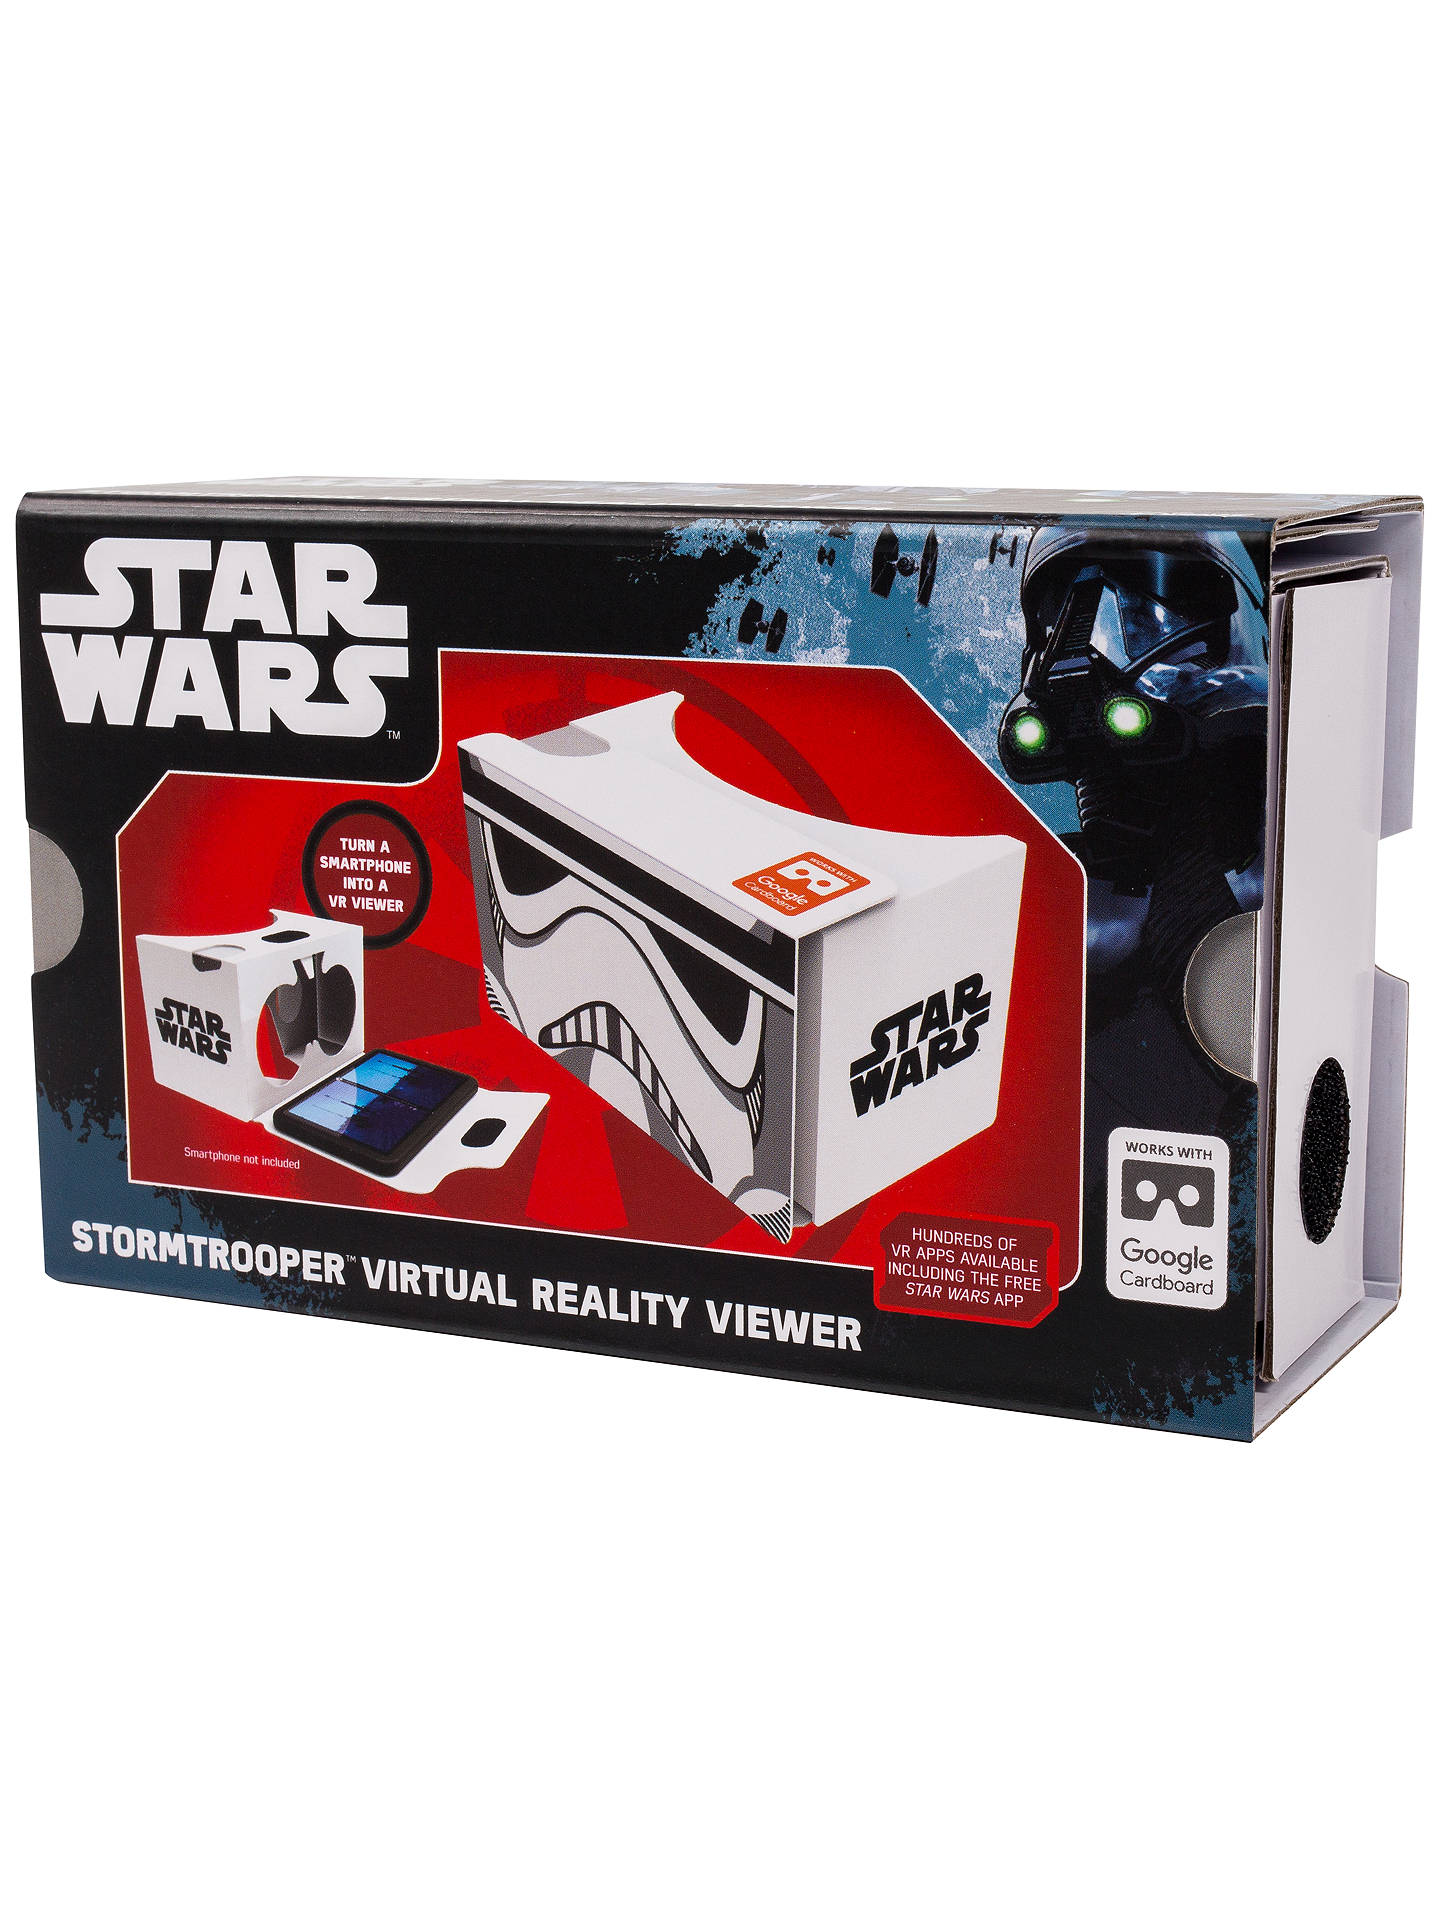 b4f3413a53cf Buy Star Wars  The Force Awakens Cardboard VR Viewer